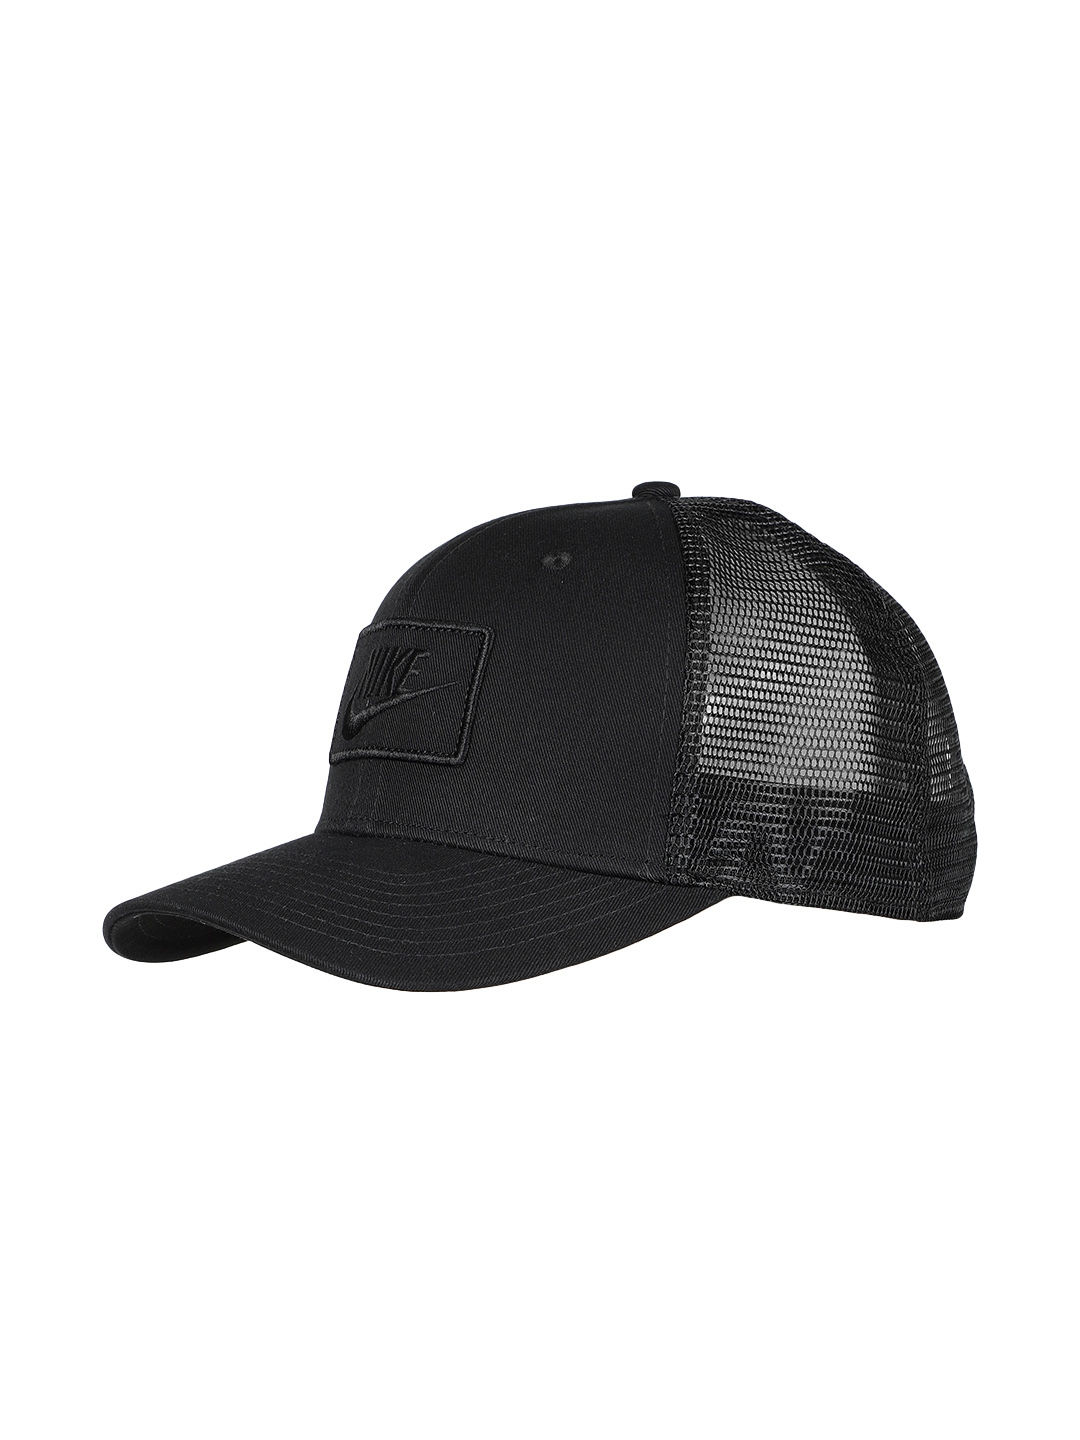 4cb668d99a78b Buy Nike Unisex Black Solid Snapback Cap AQ9879 011 - Caps for ...